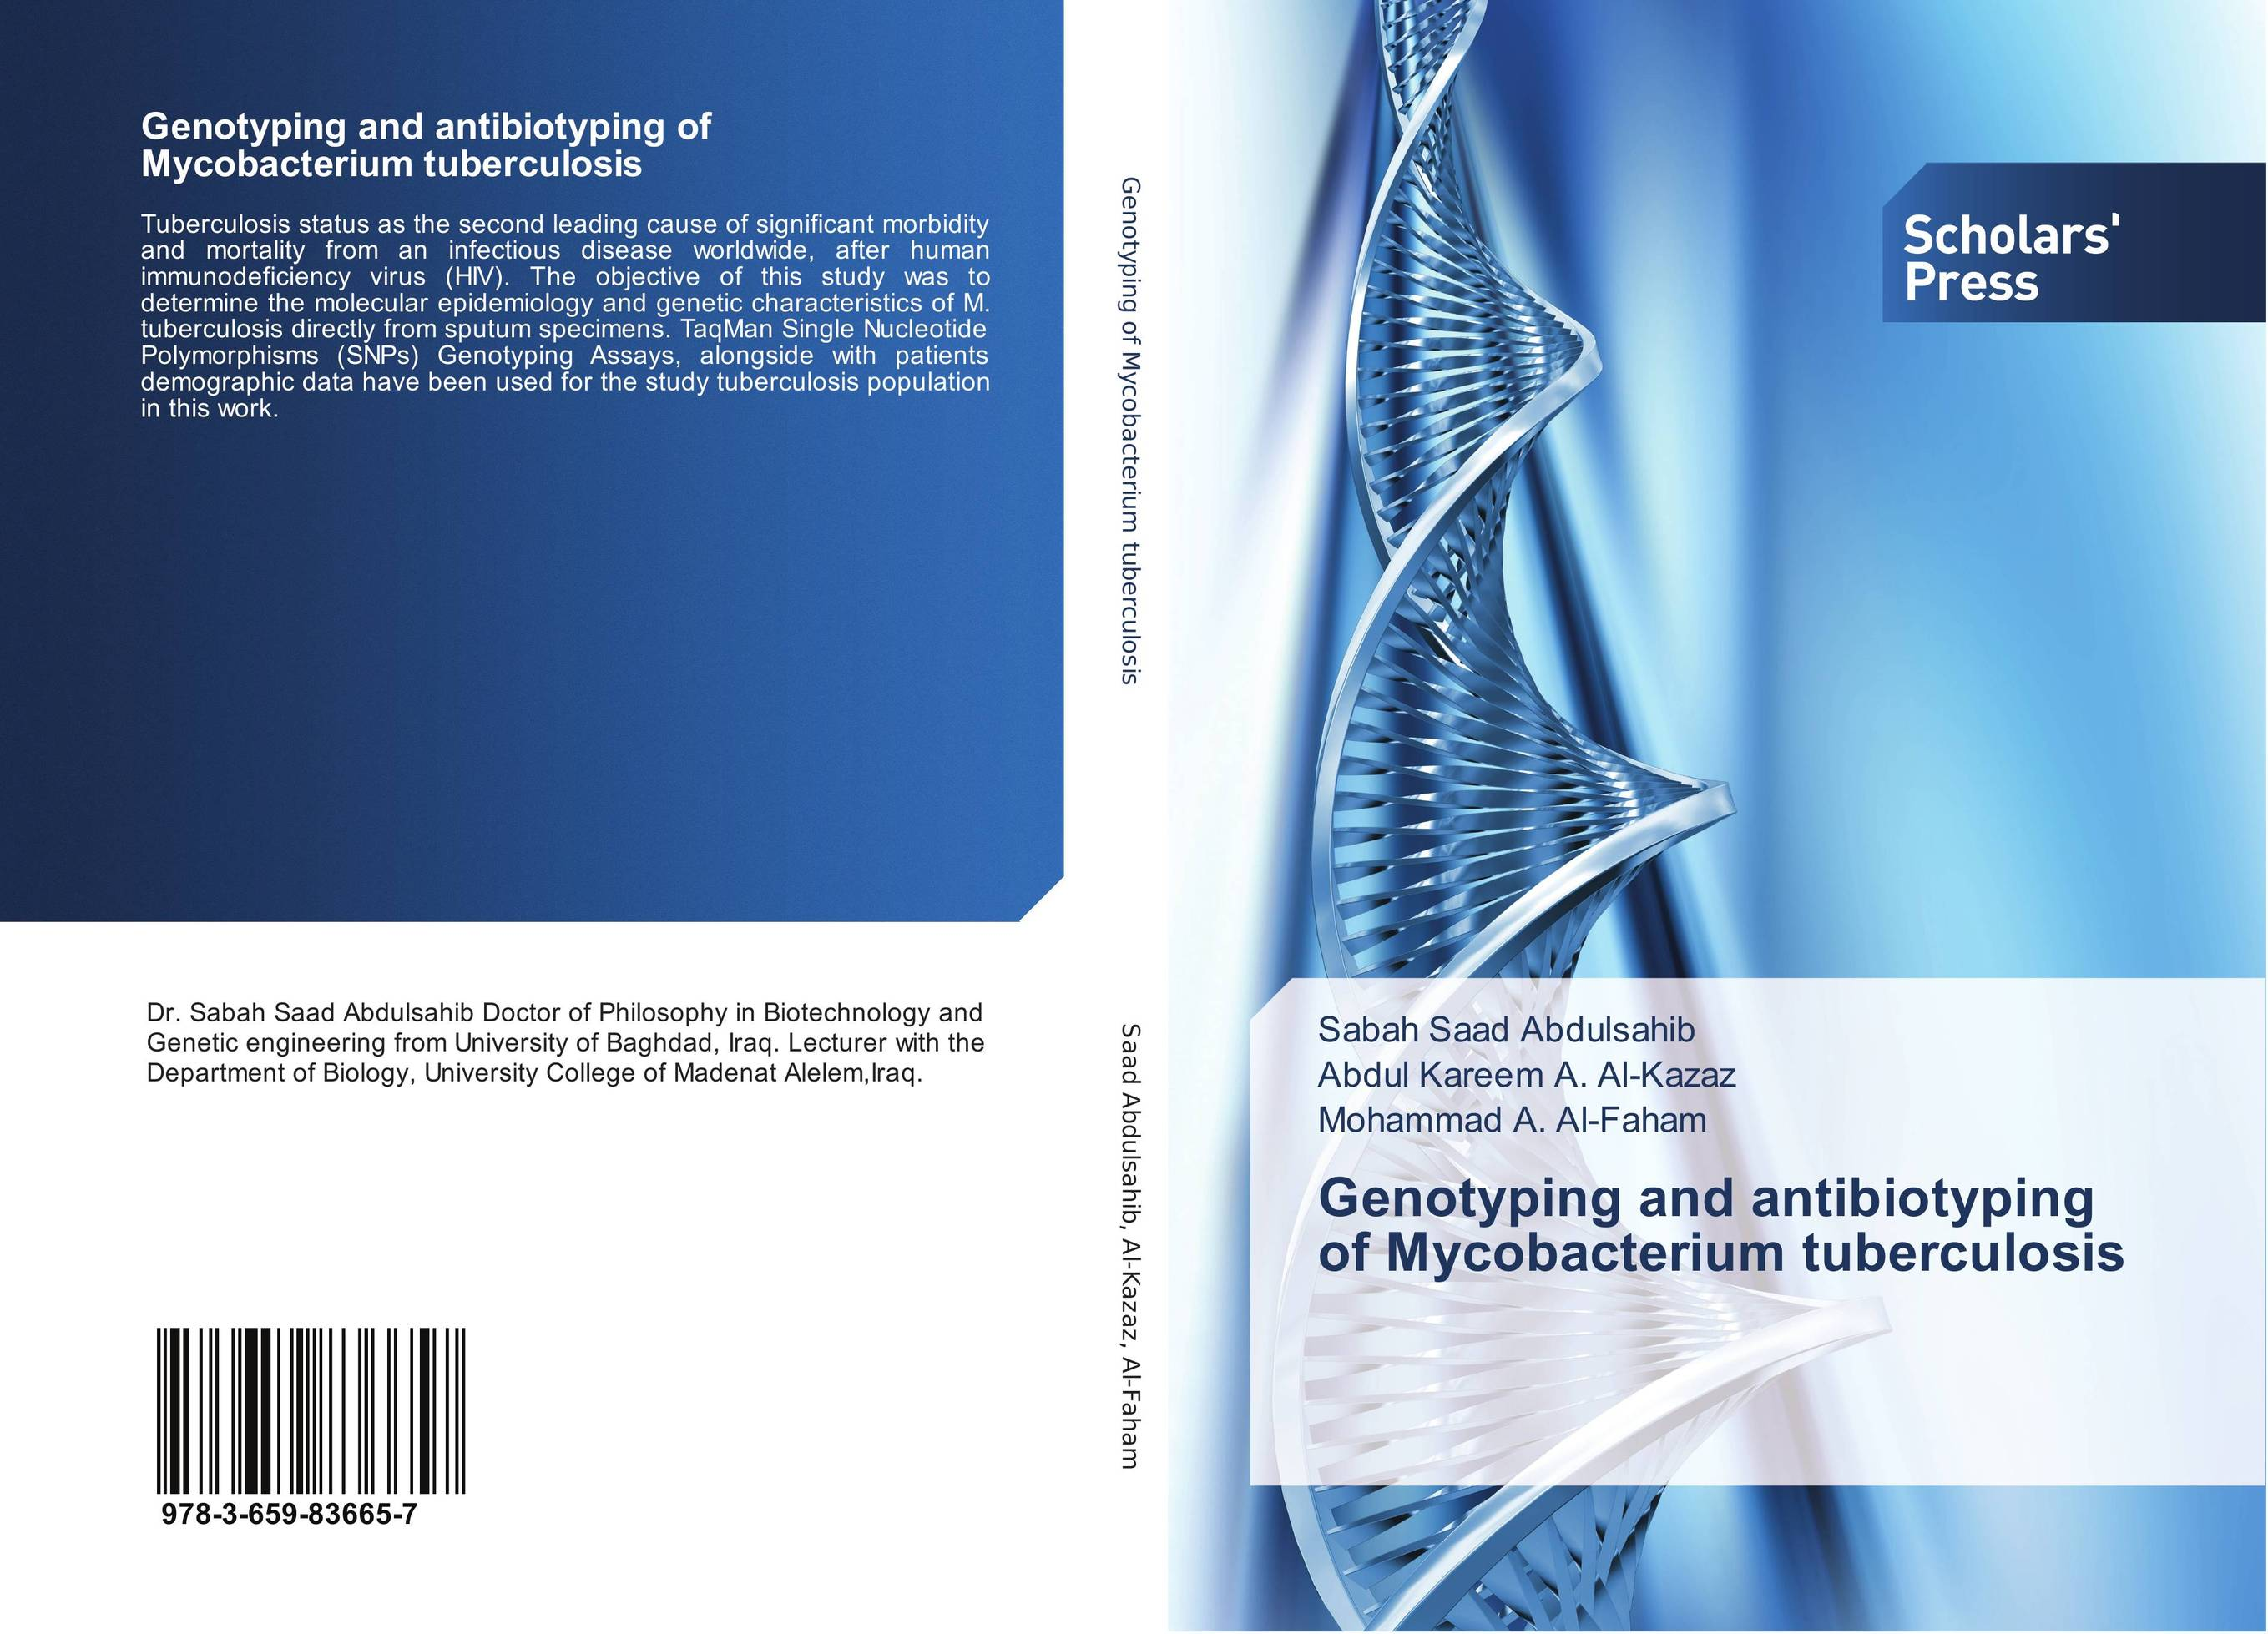 Genotyping and antibiotyping of Mycobacterium tuberculosis genotyping and antibiotyping of mycobacterium tuberculosis